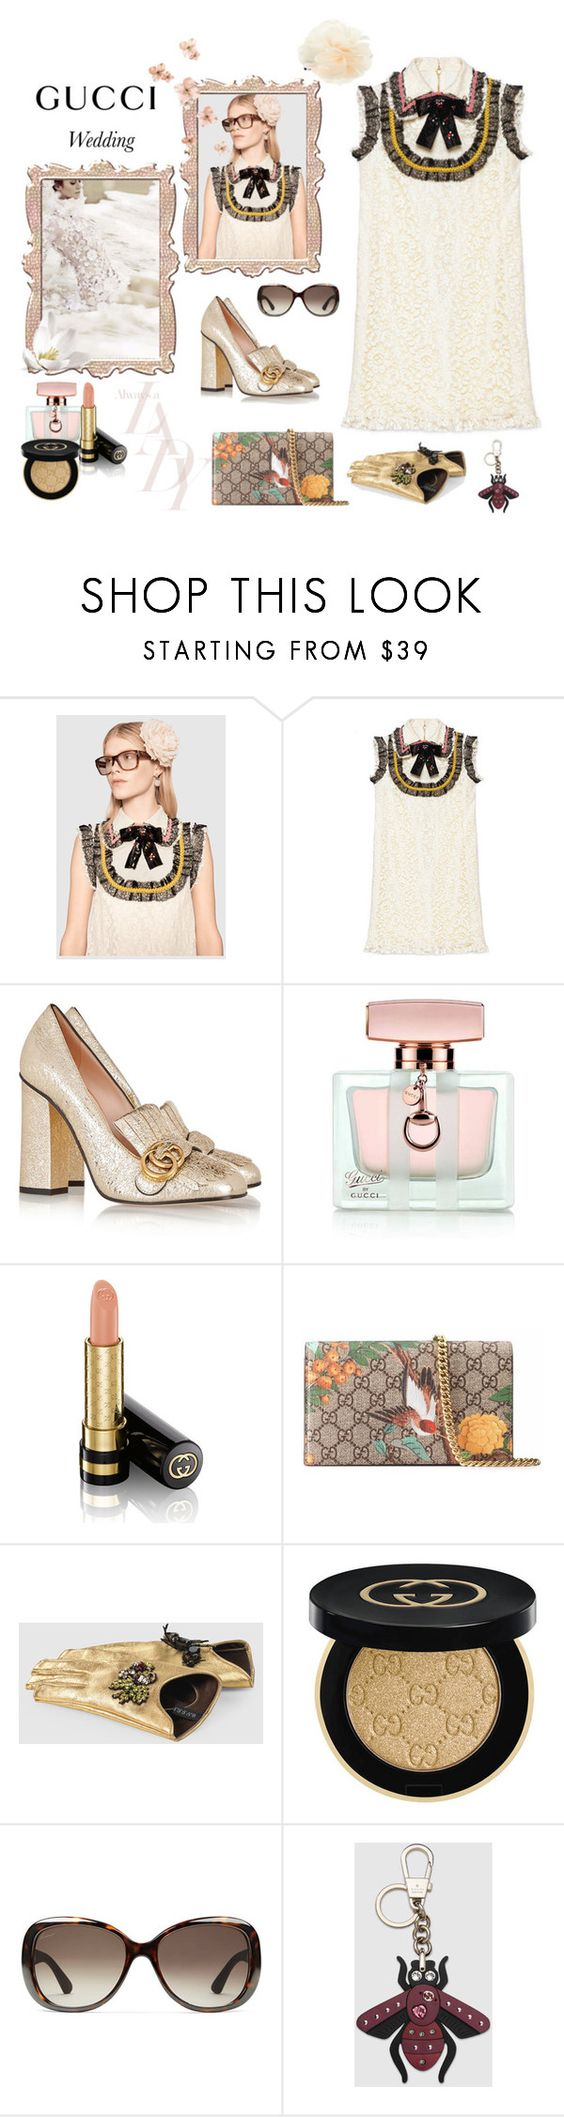 """May, wedding season kick off- the Gucci girl guest"" by juliabachmann ❤ liked on Polyvore featuring Gucci and Accessorize"